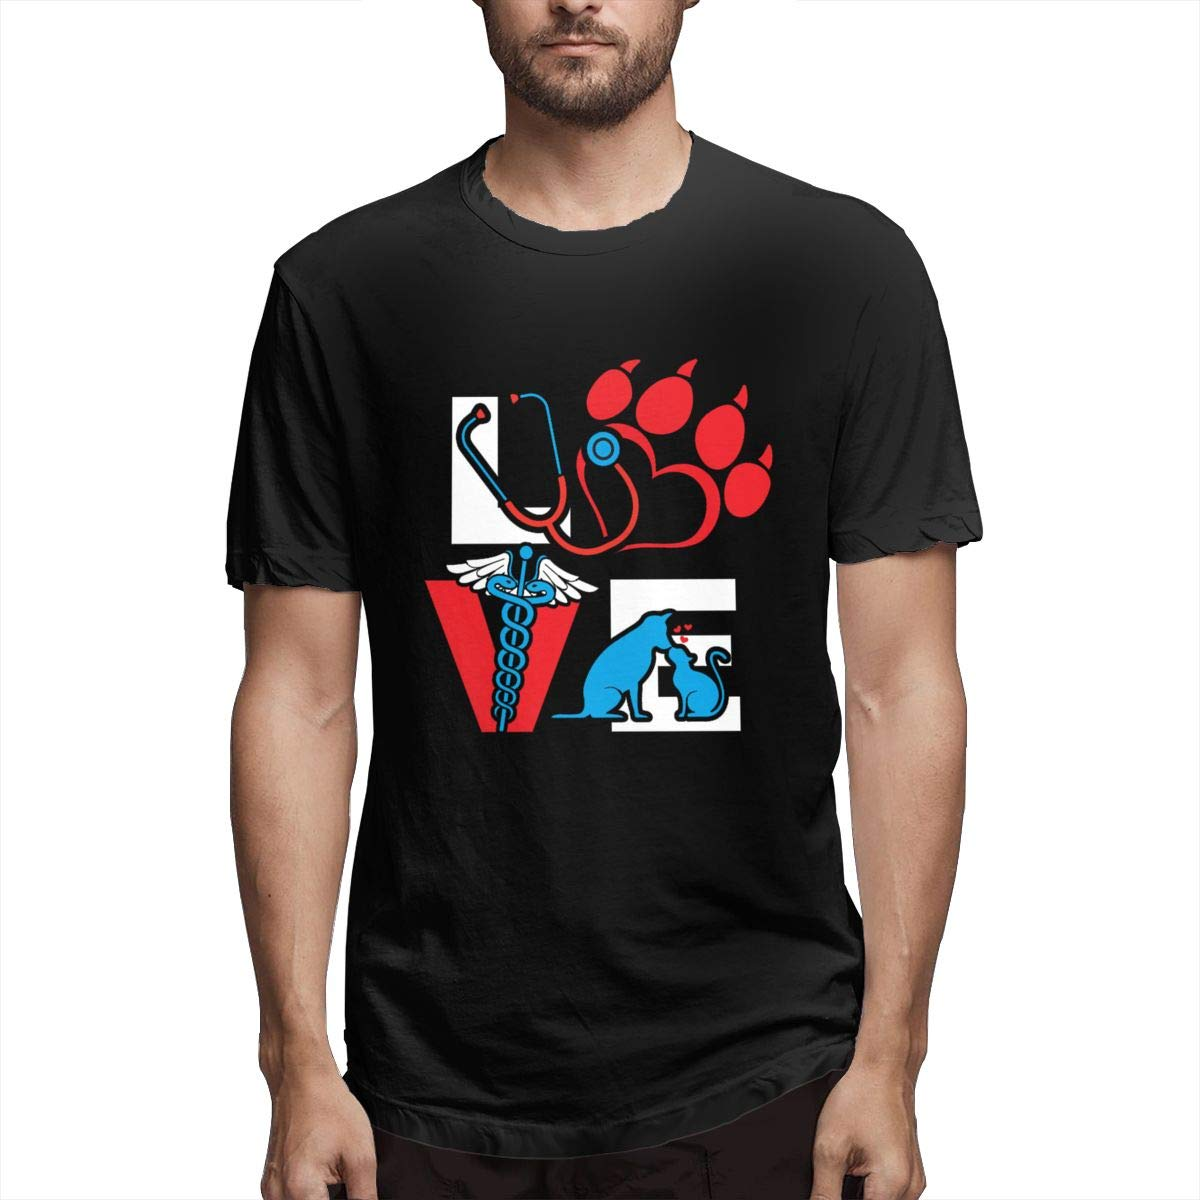 Veterinarian Love Cat And Dog Veterinary S Short Sleeve Tshirts